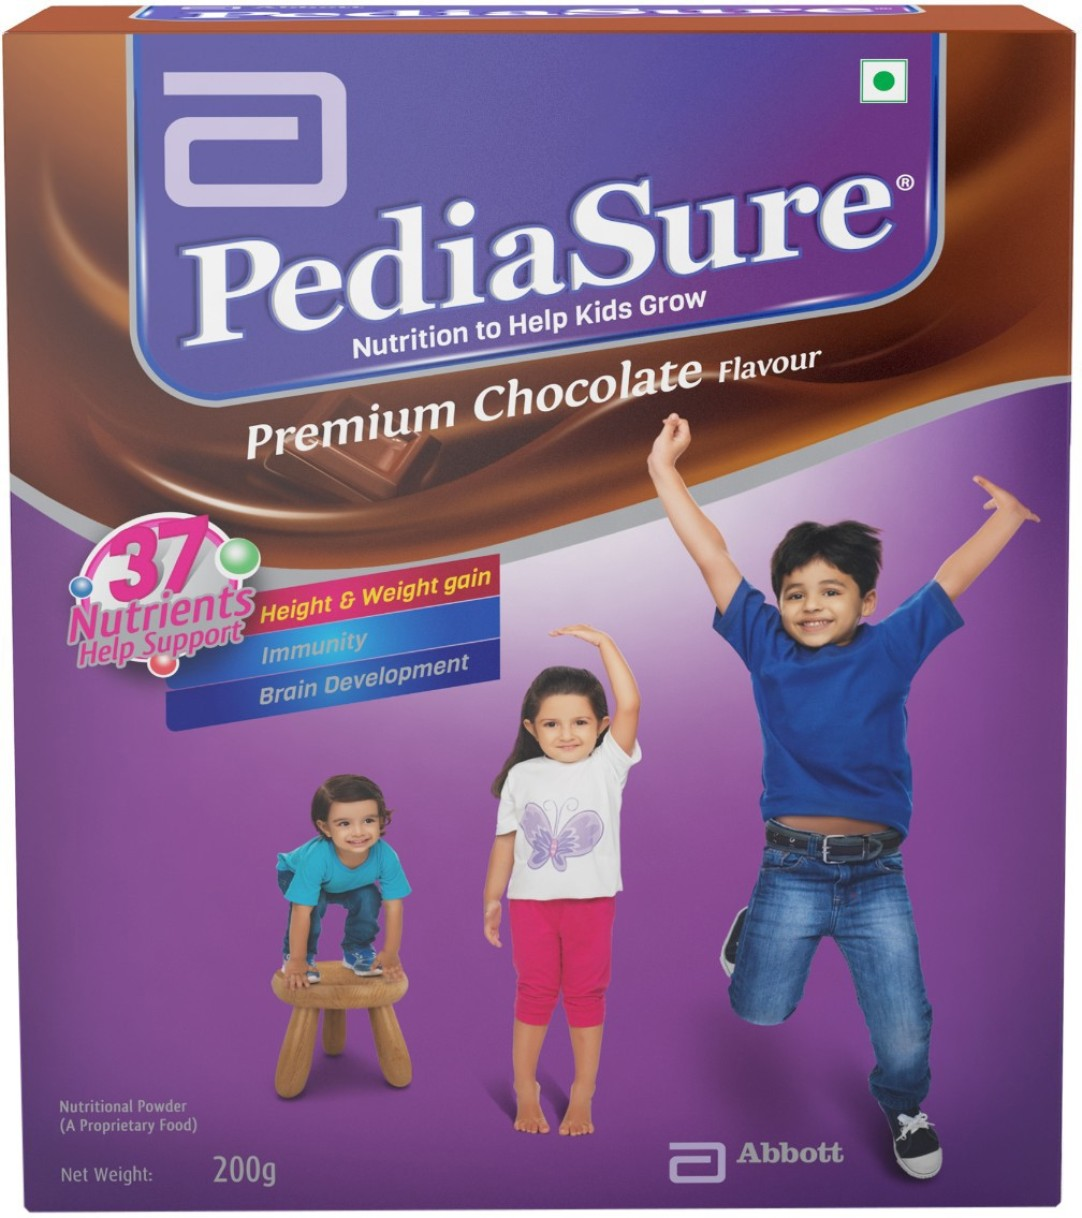 PediaSure Premium Chocolate Refill Pack Nutrition Drink  (200 g, Chocolate Flavored) at Rs.177